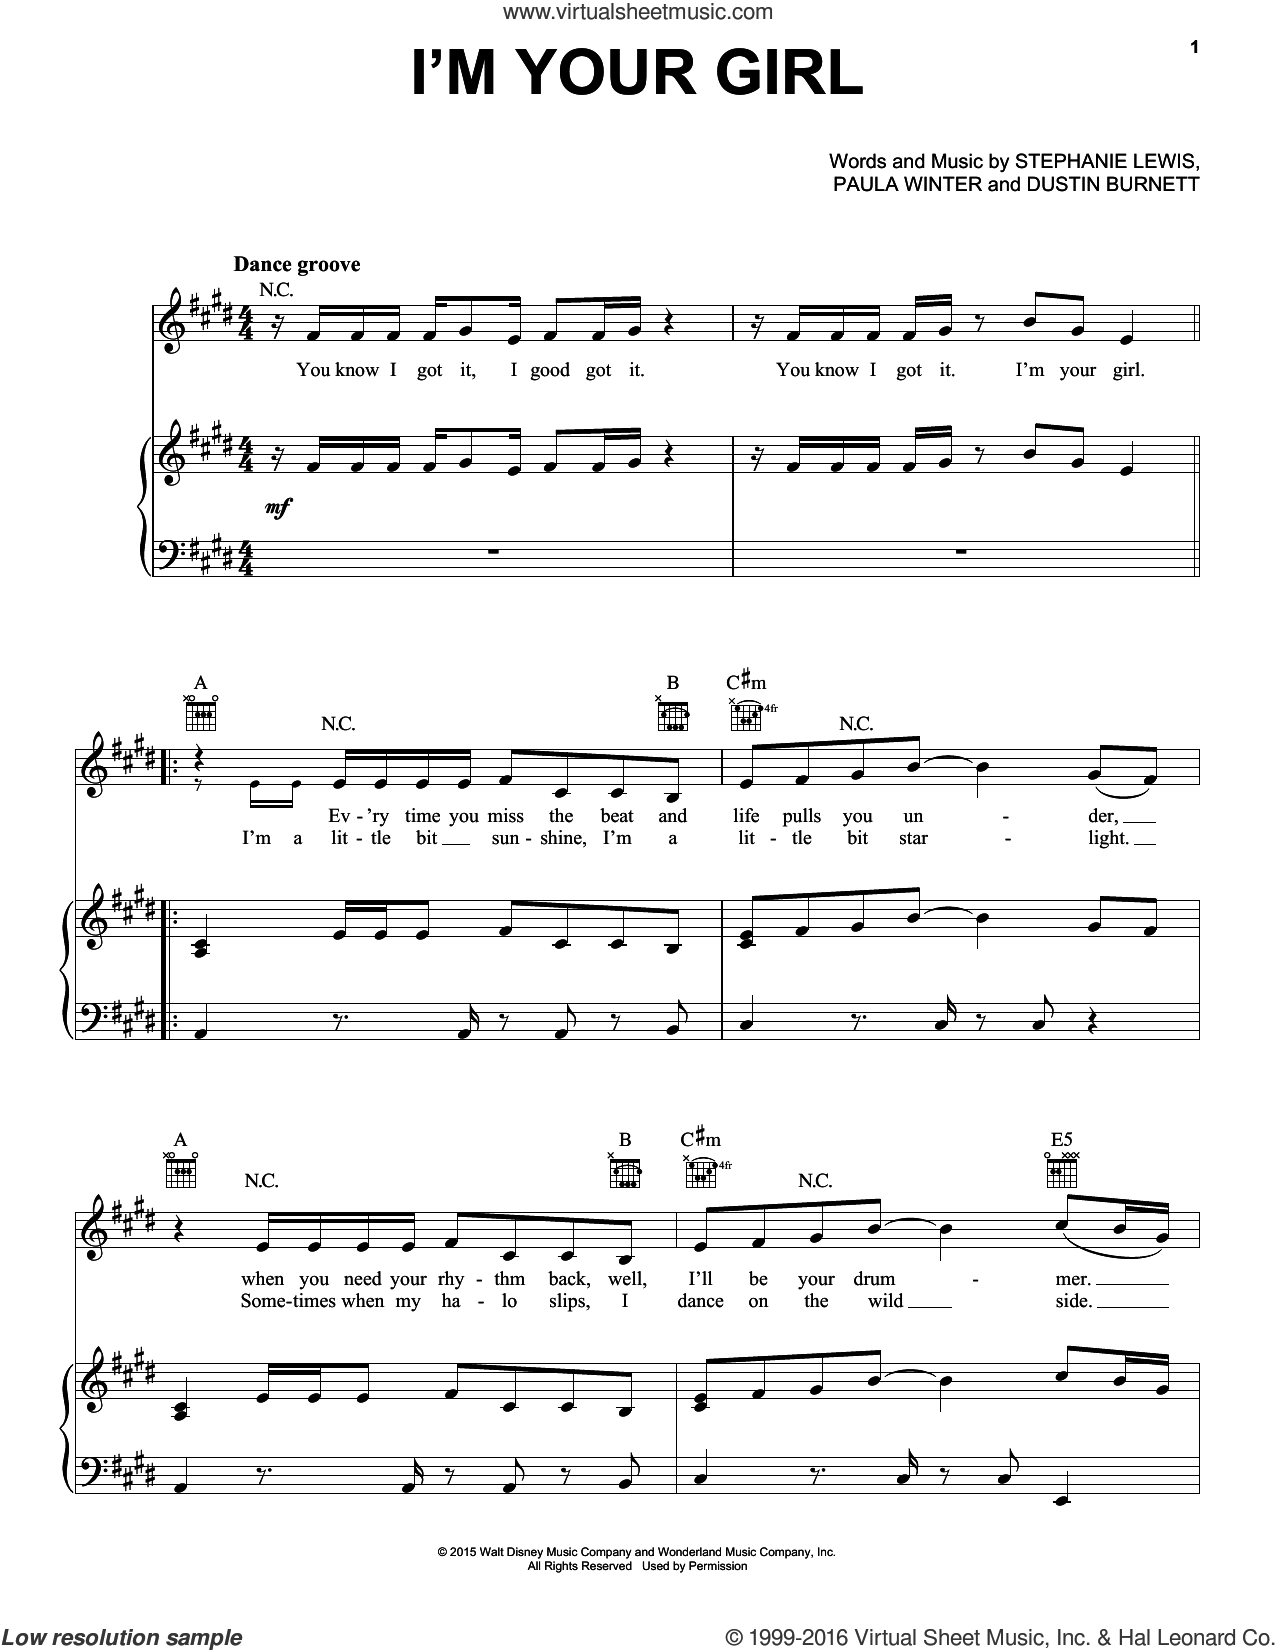 I'm Your Girl sheet music for voice, piano or guitar by Stephanie Lewis